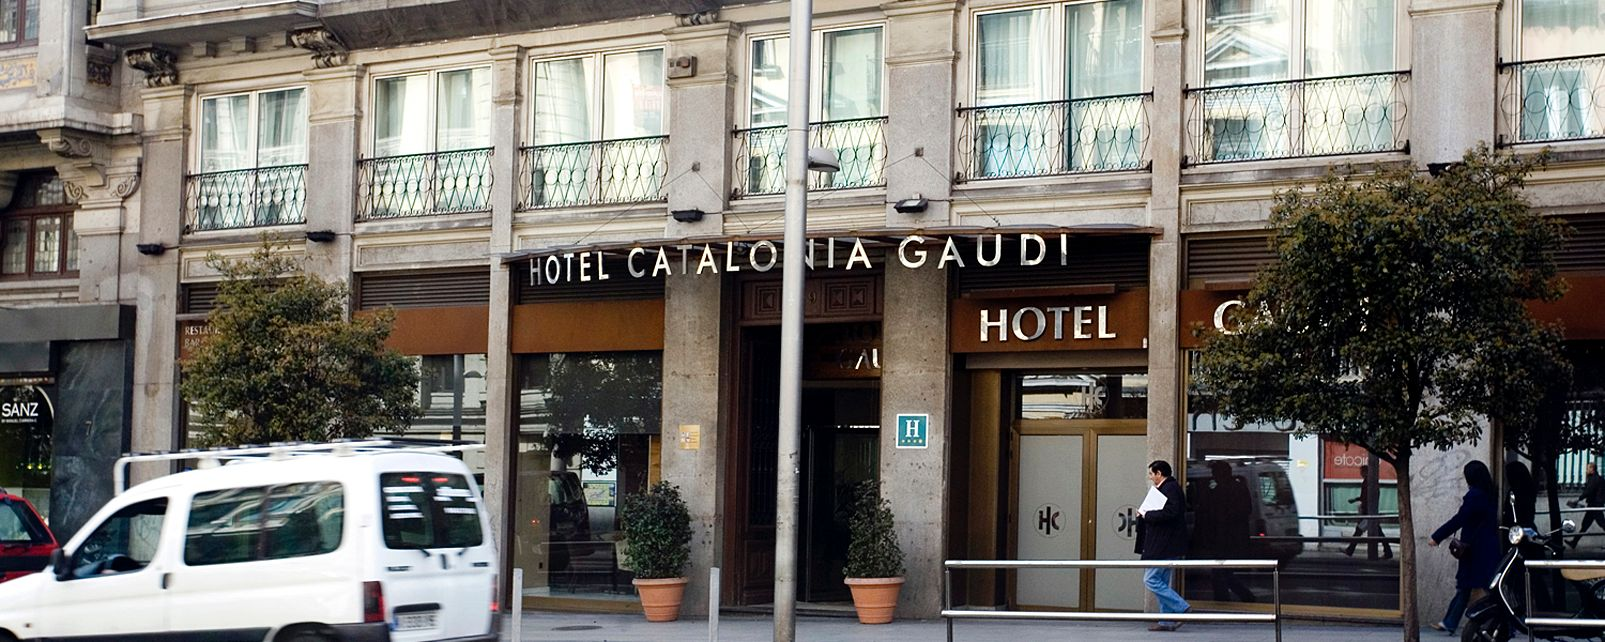 Hotel Catalonia Gaud In Madrid Spain